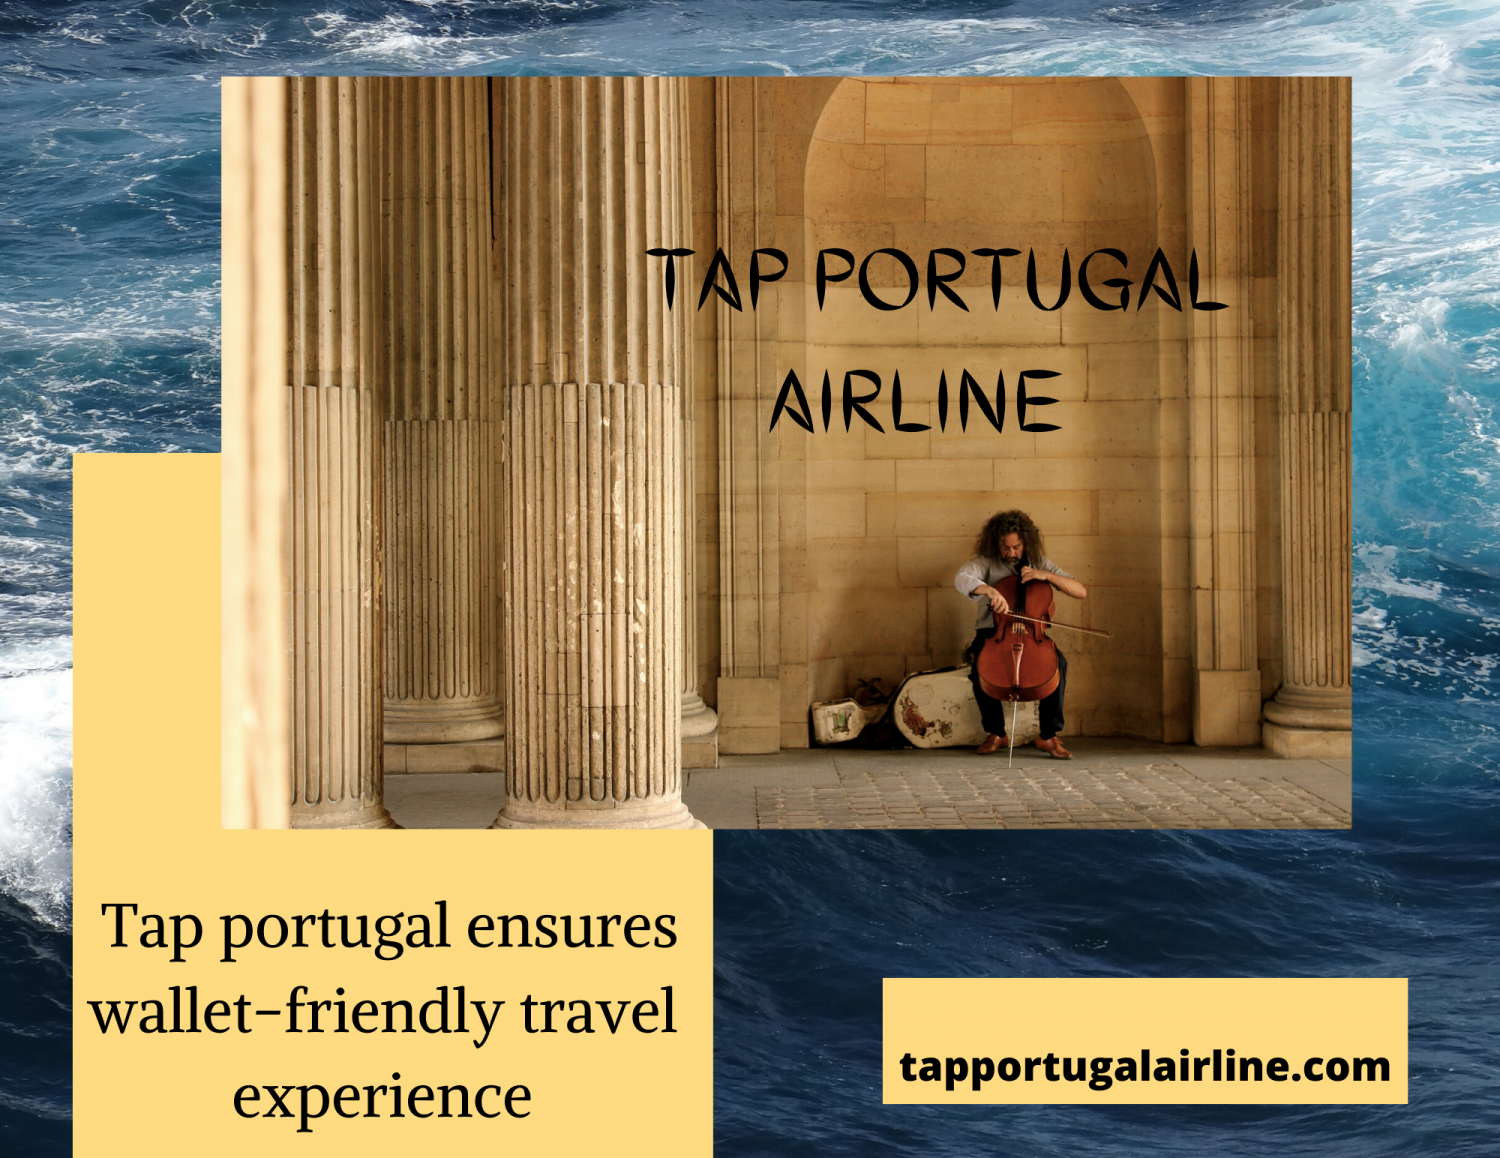 Tap portugal ensures wallet-friendly travel experience Infographic